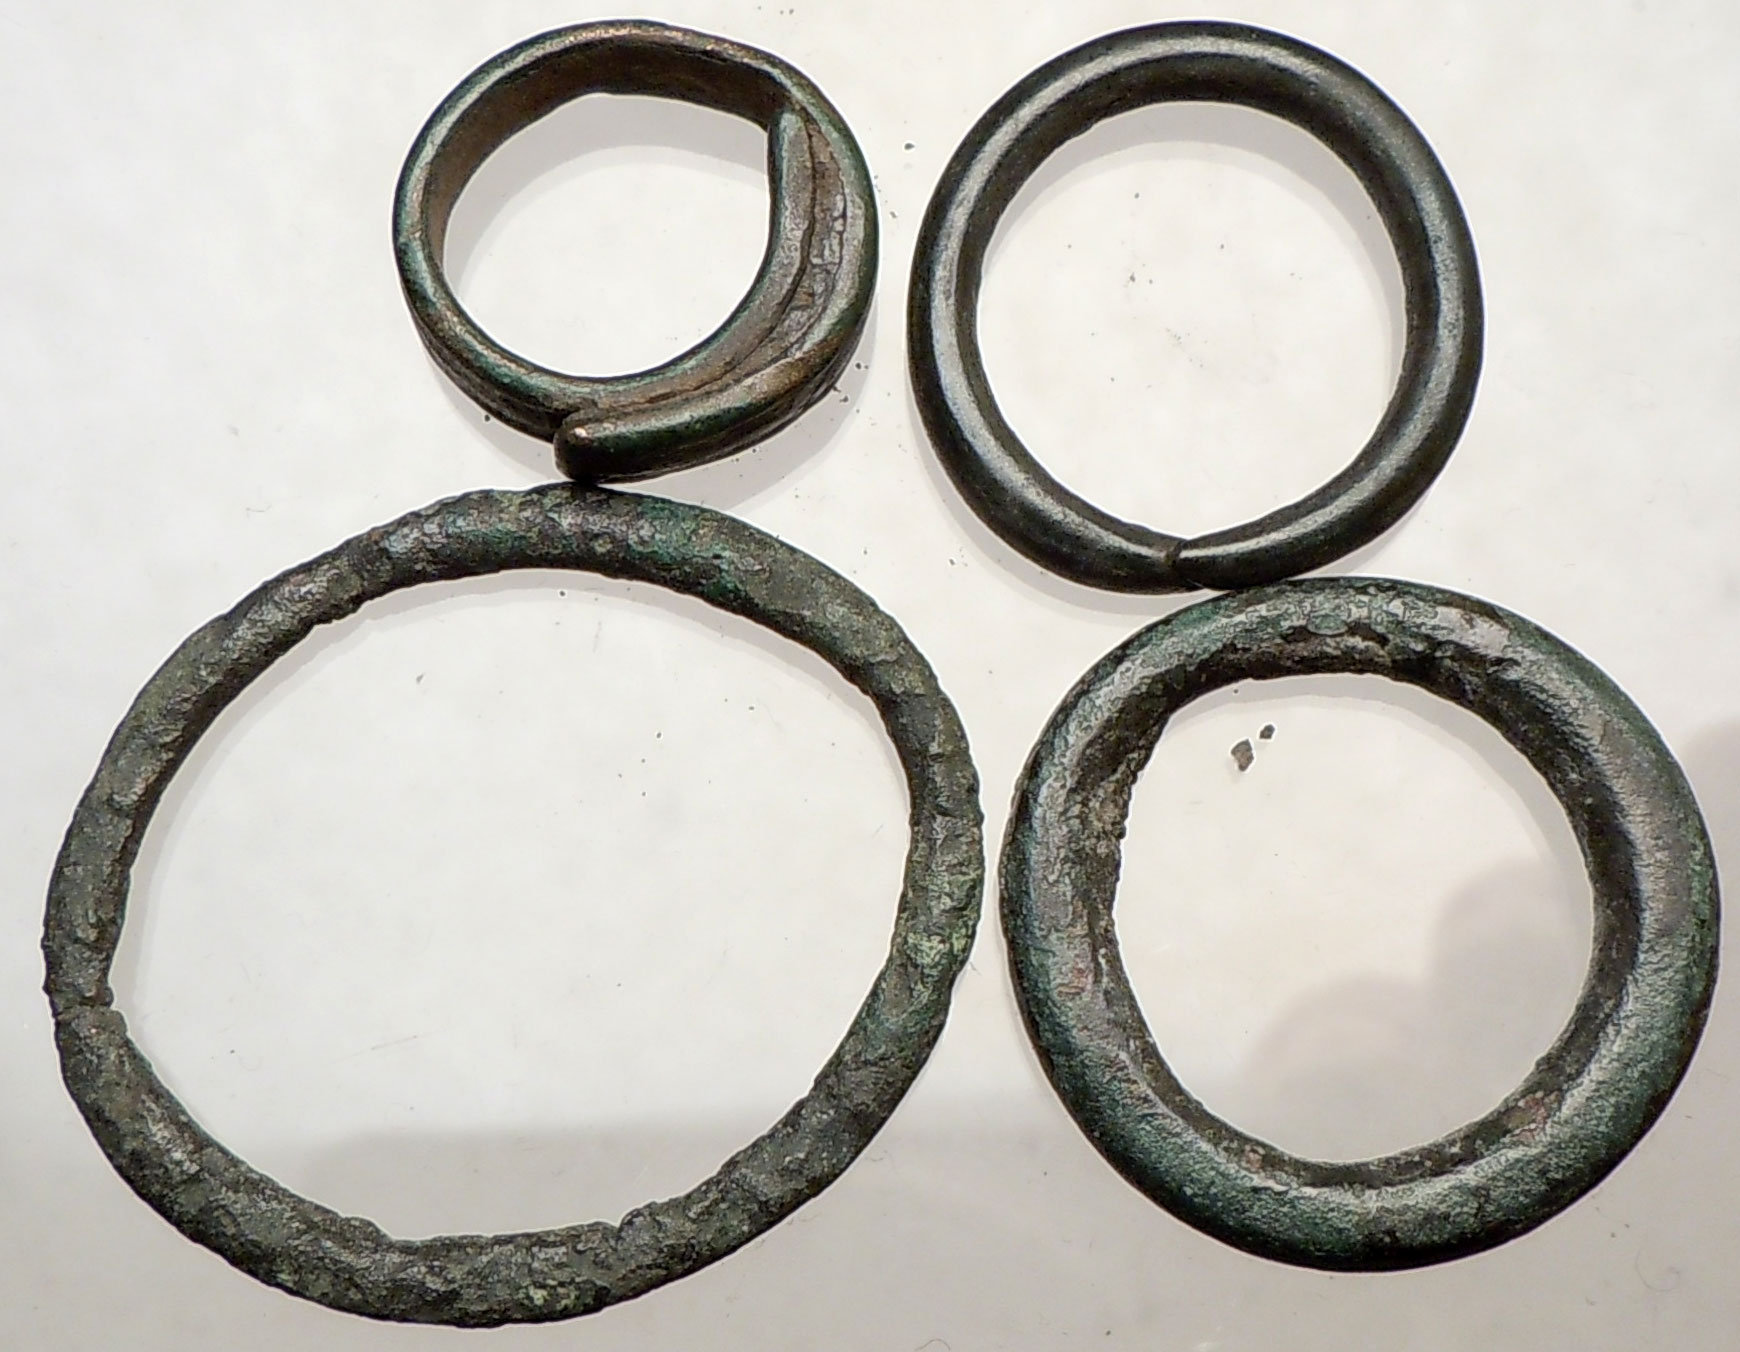 celtic 800bc ancient ring money proto coin collection